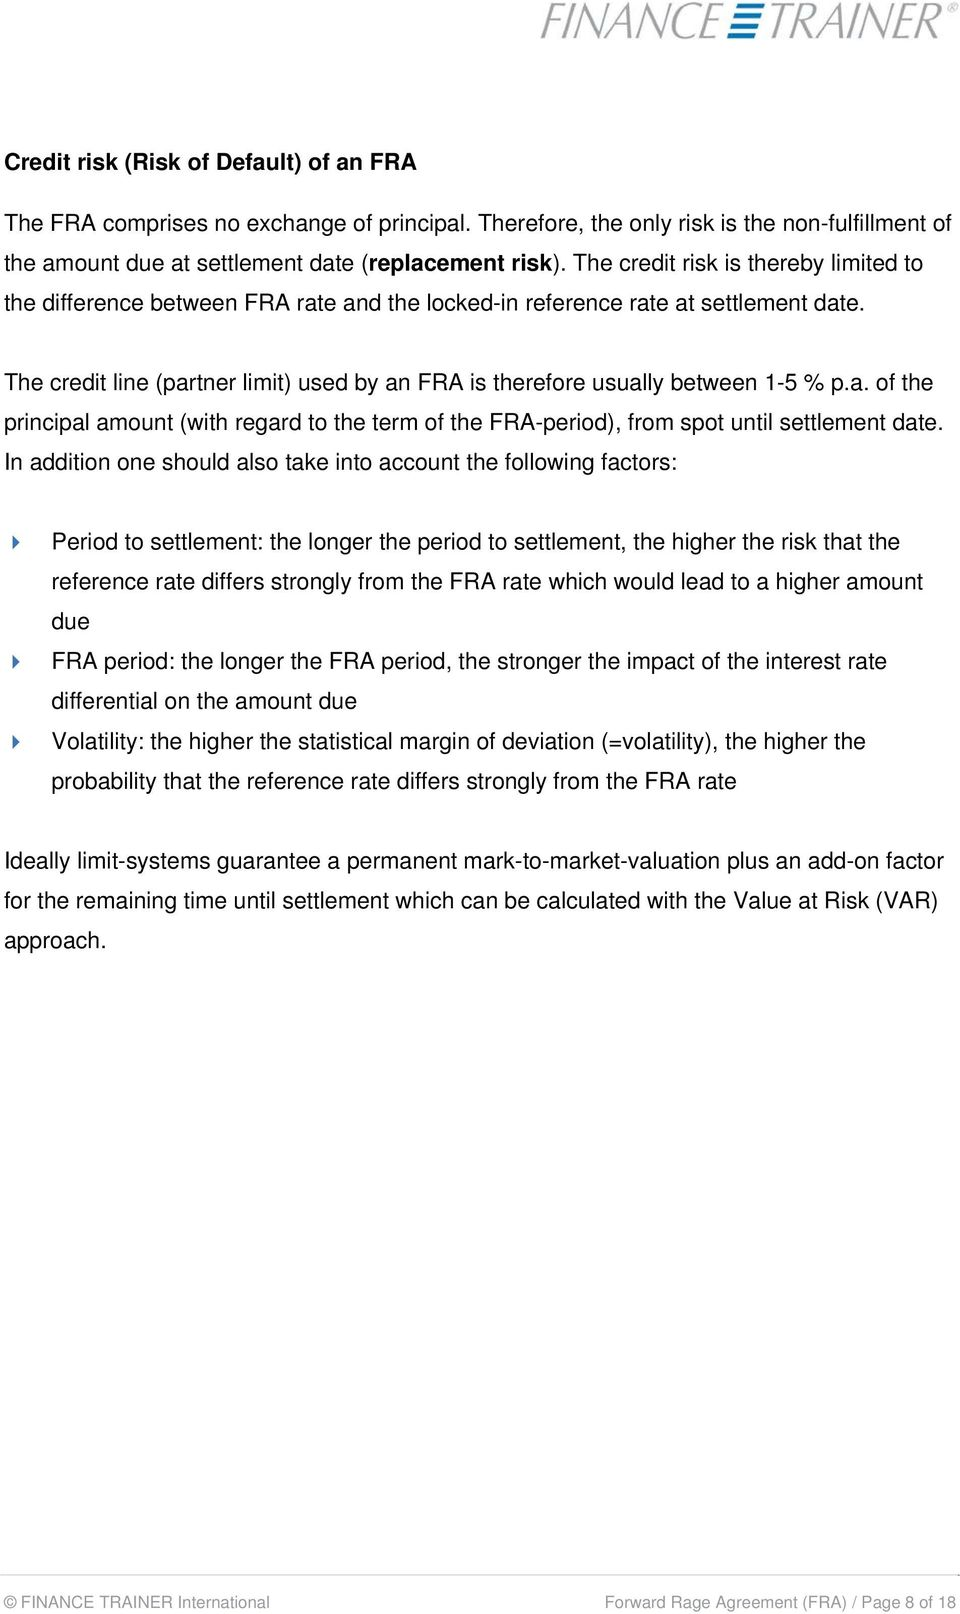 The credit line (partner limit) used by an FRA is therefore usually between 1-5 % p.a. of the principal amount (with regard to the term of the FRA-period), from spot until settlement date.